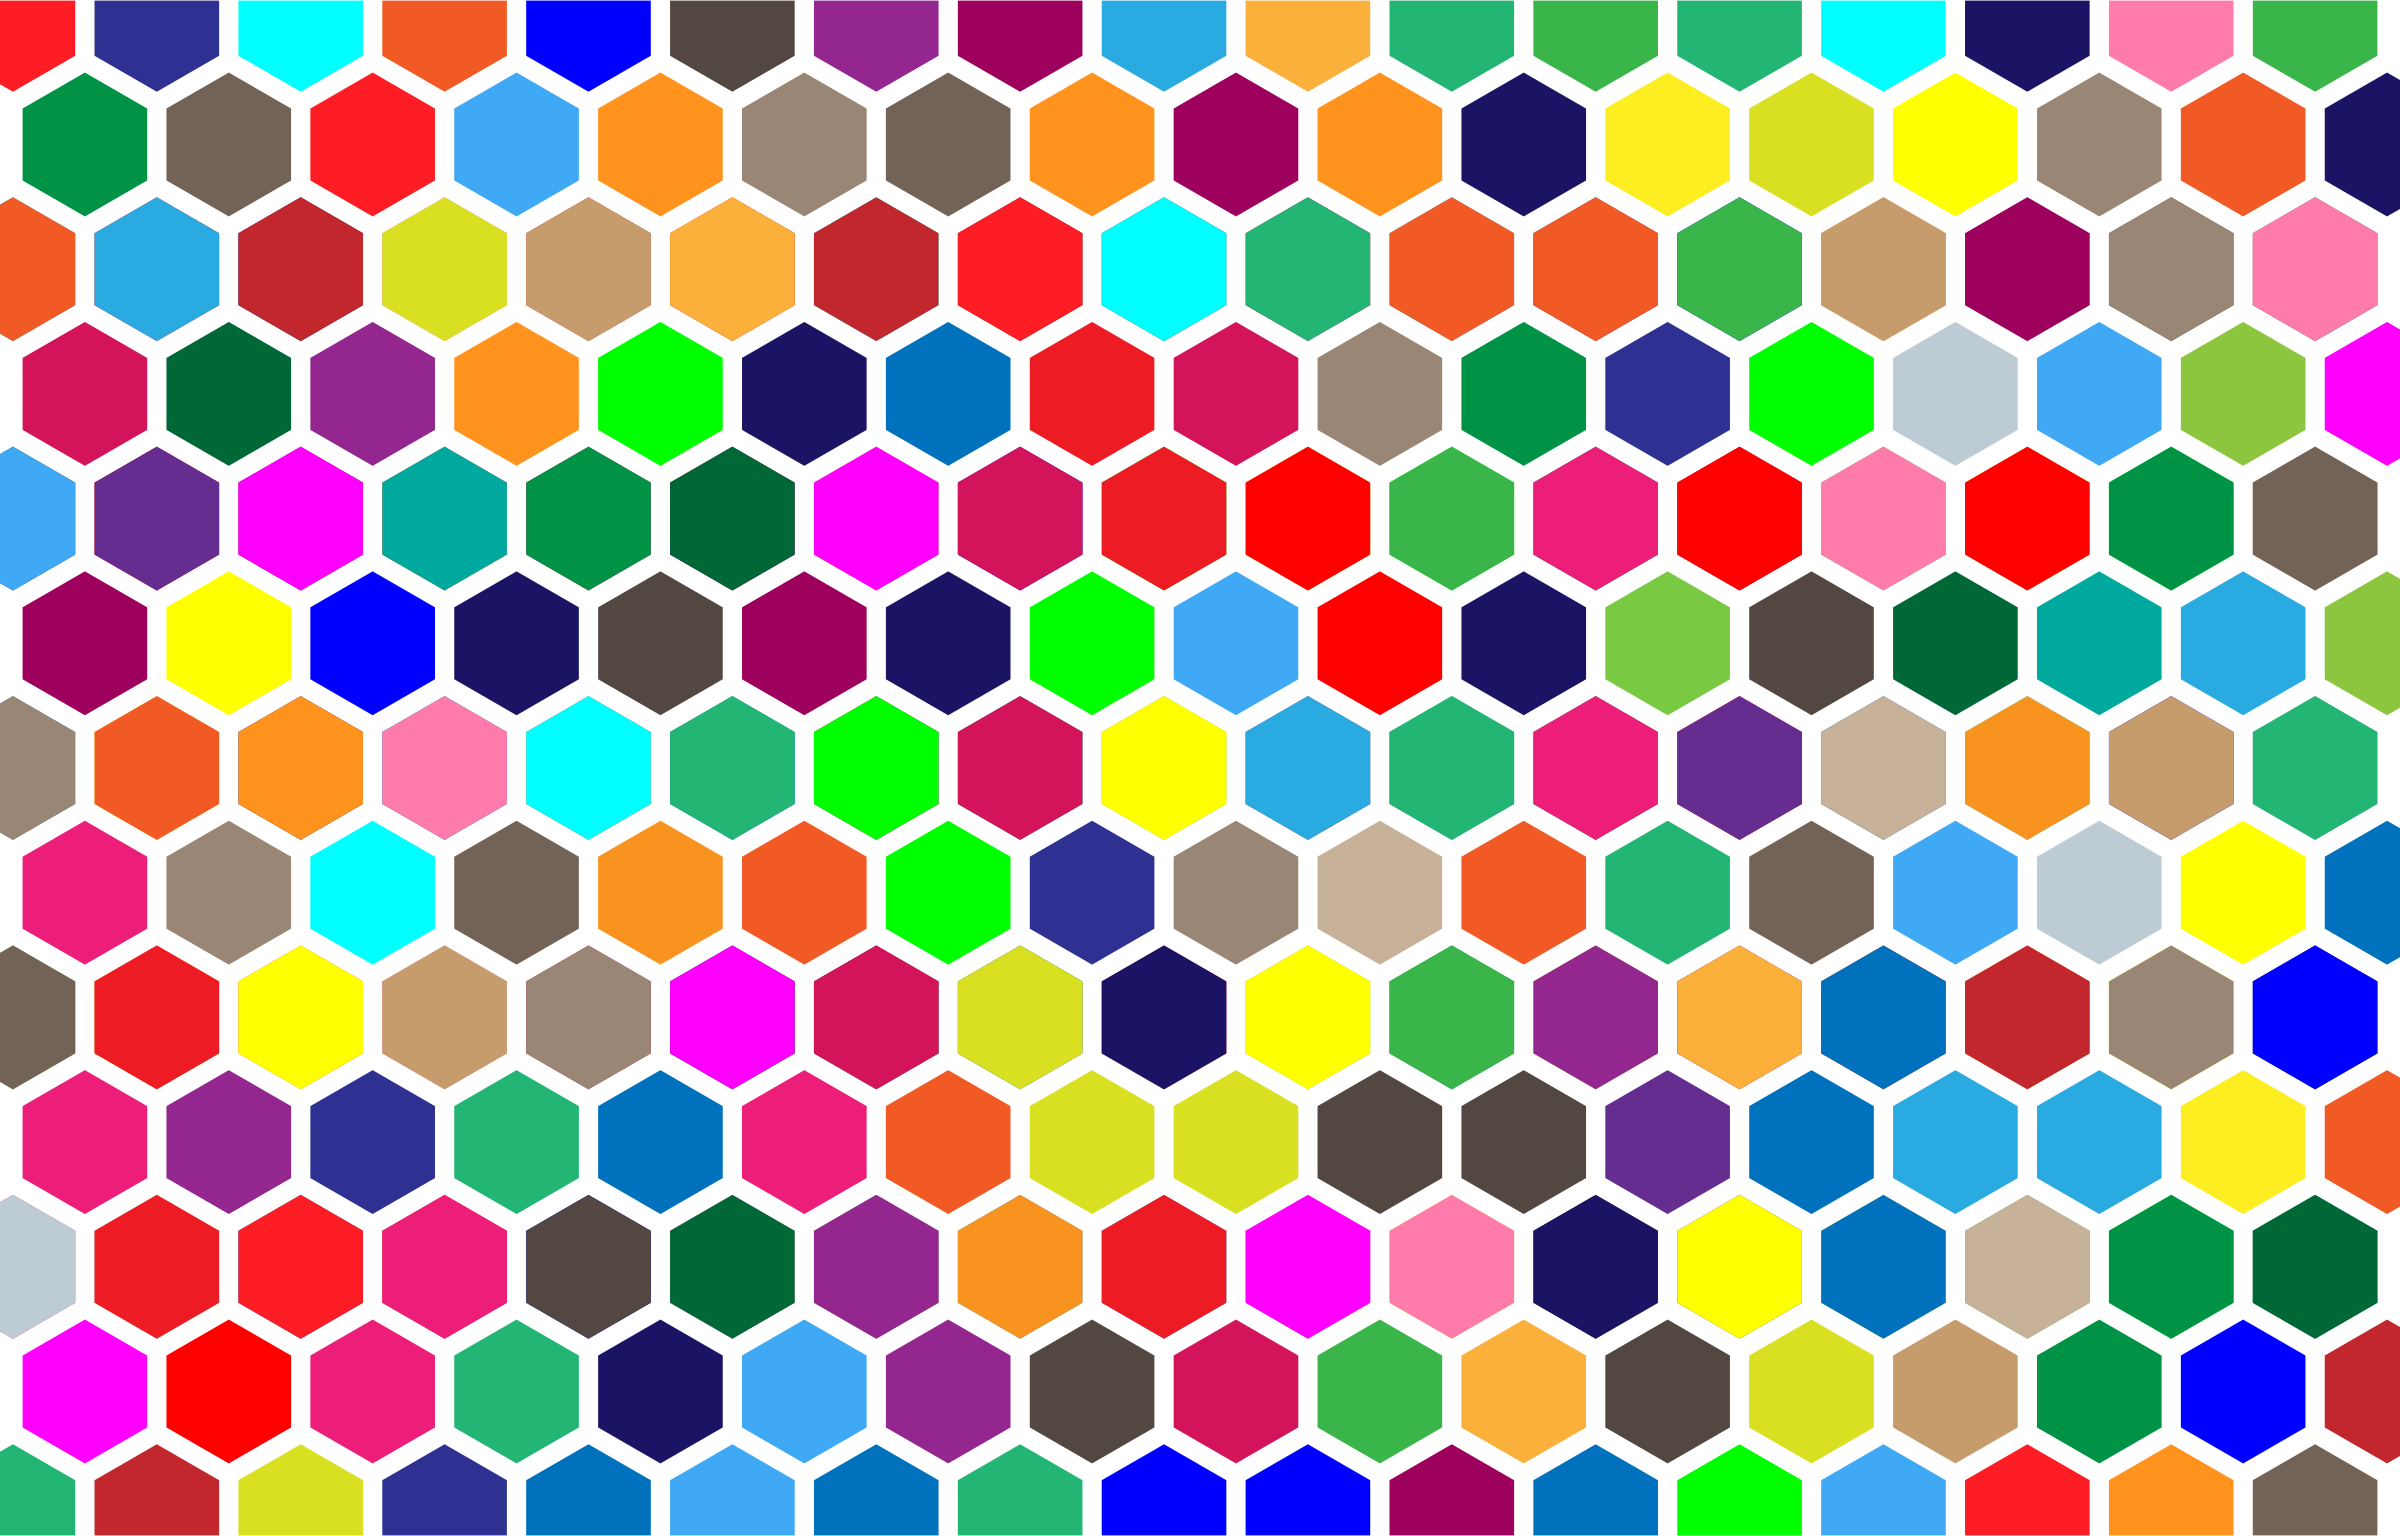 Colorful Hex Grid Pattern 2 by GDJ